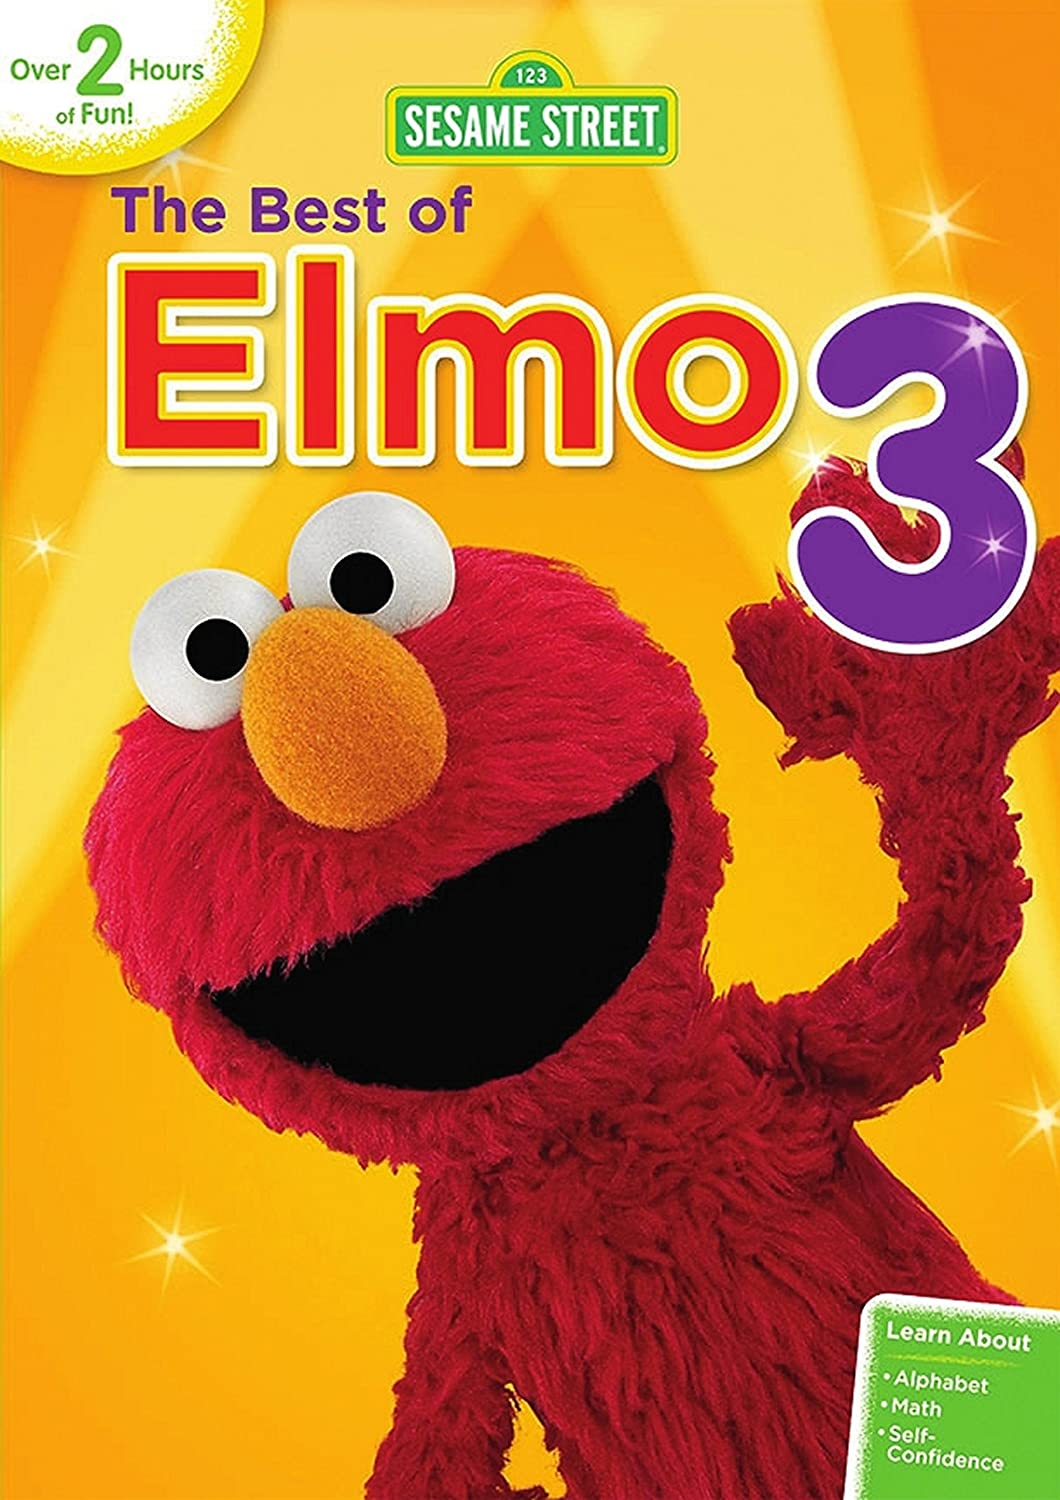 Amazoncom Sesame Street The Best of Elmo 3 Kevin Clash Ken